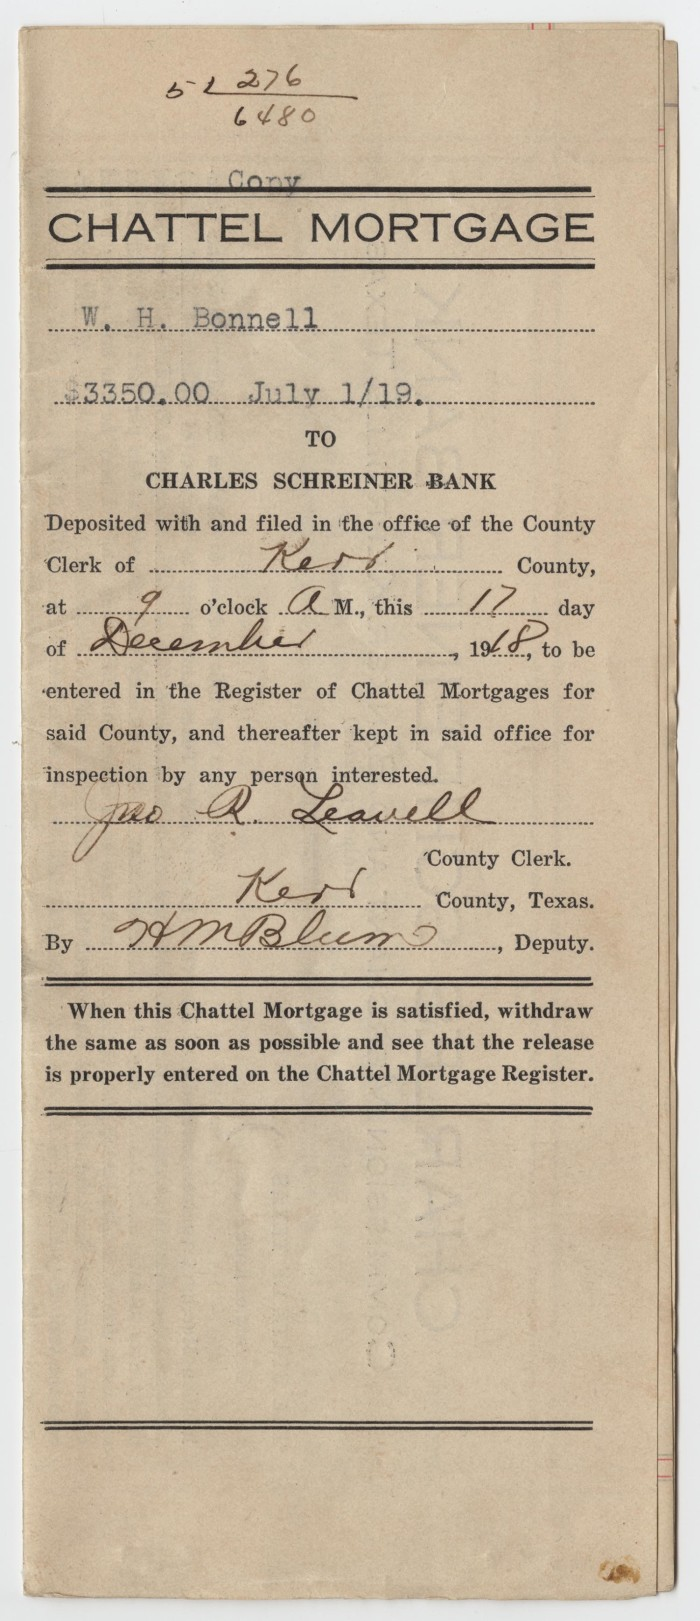 Copy of a Chattel Mortgage Agreement Between W  H  Bonnell